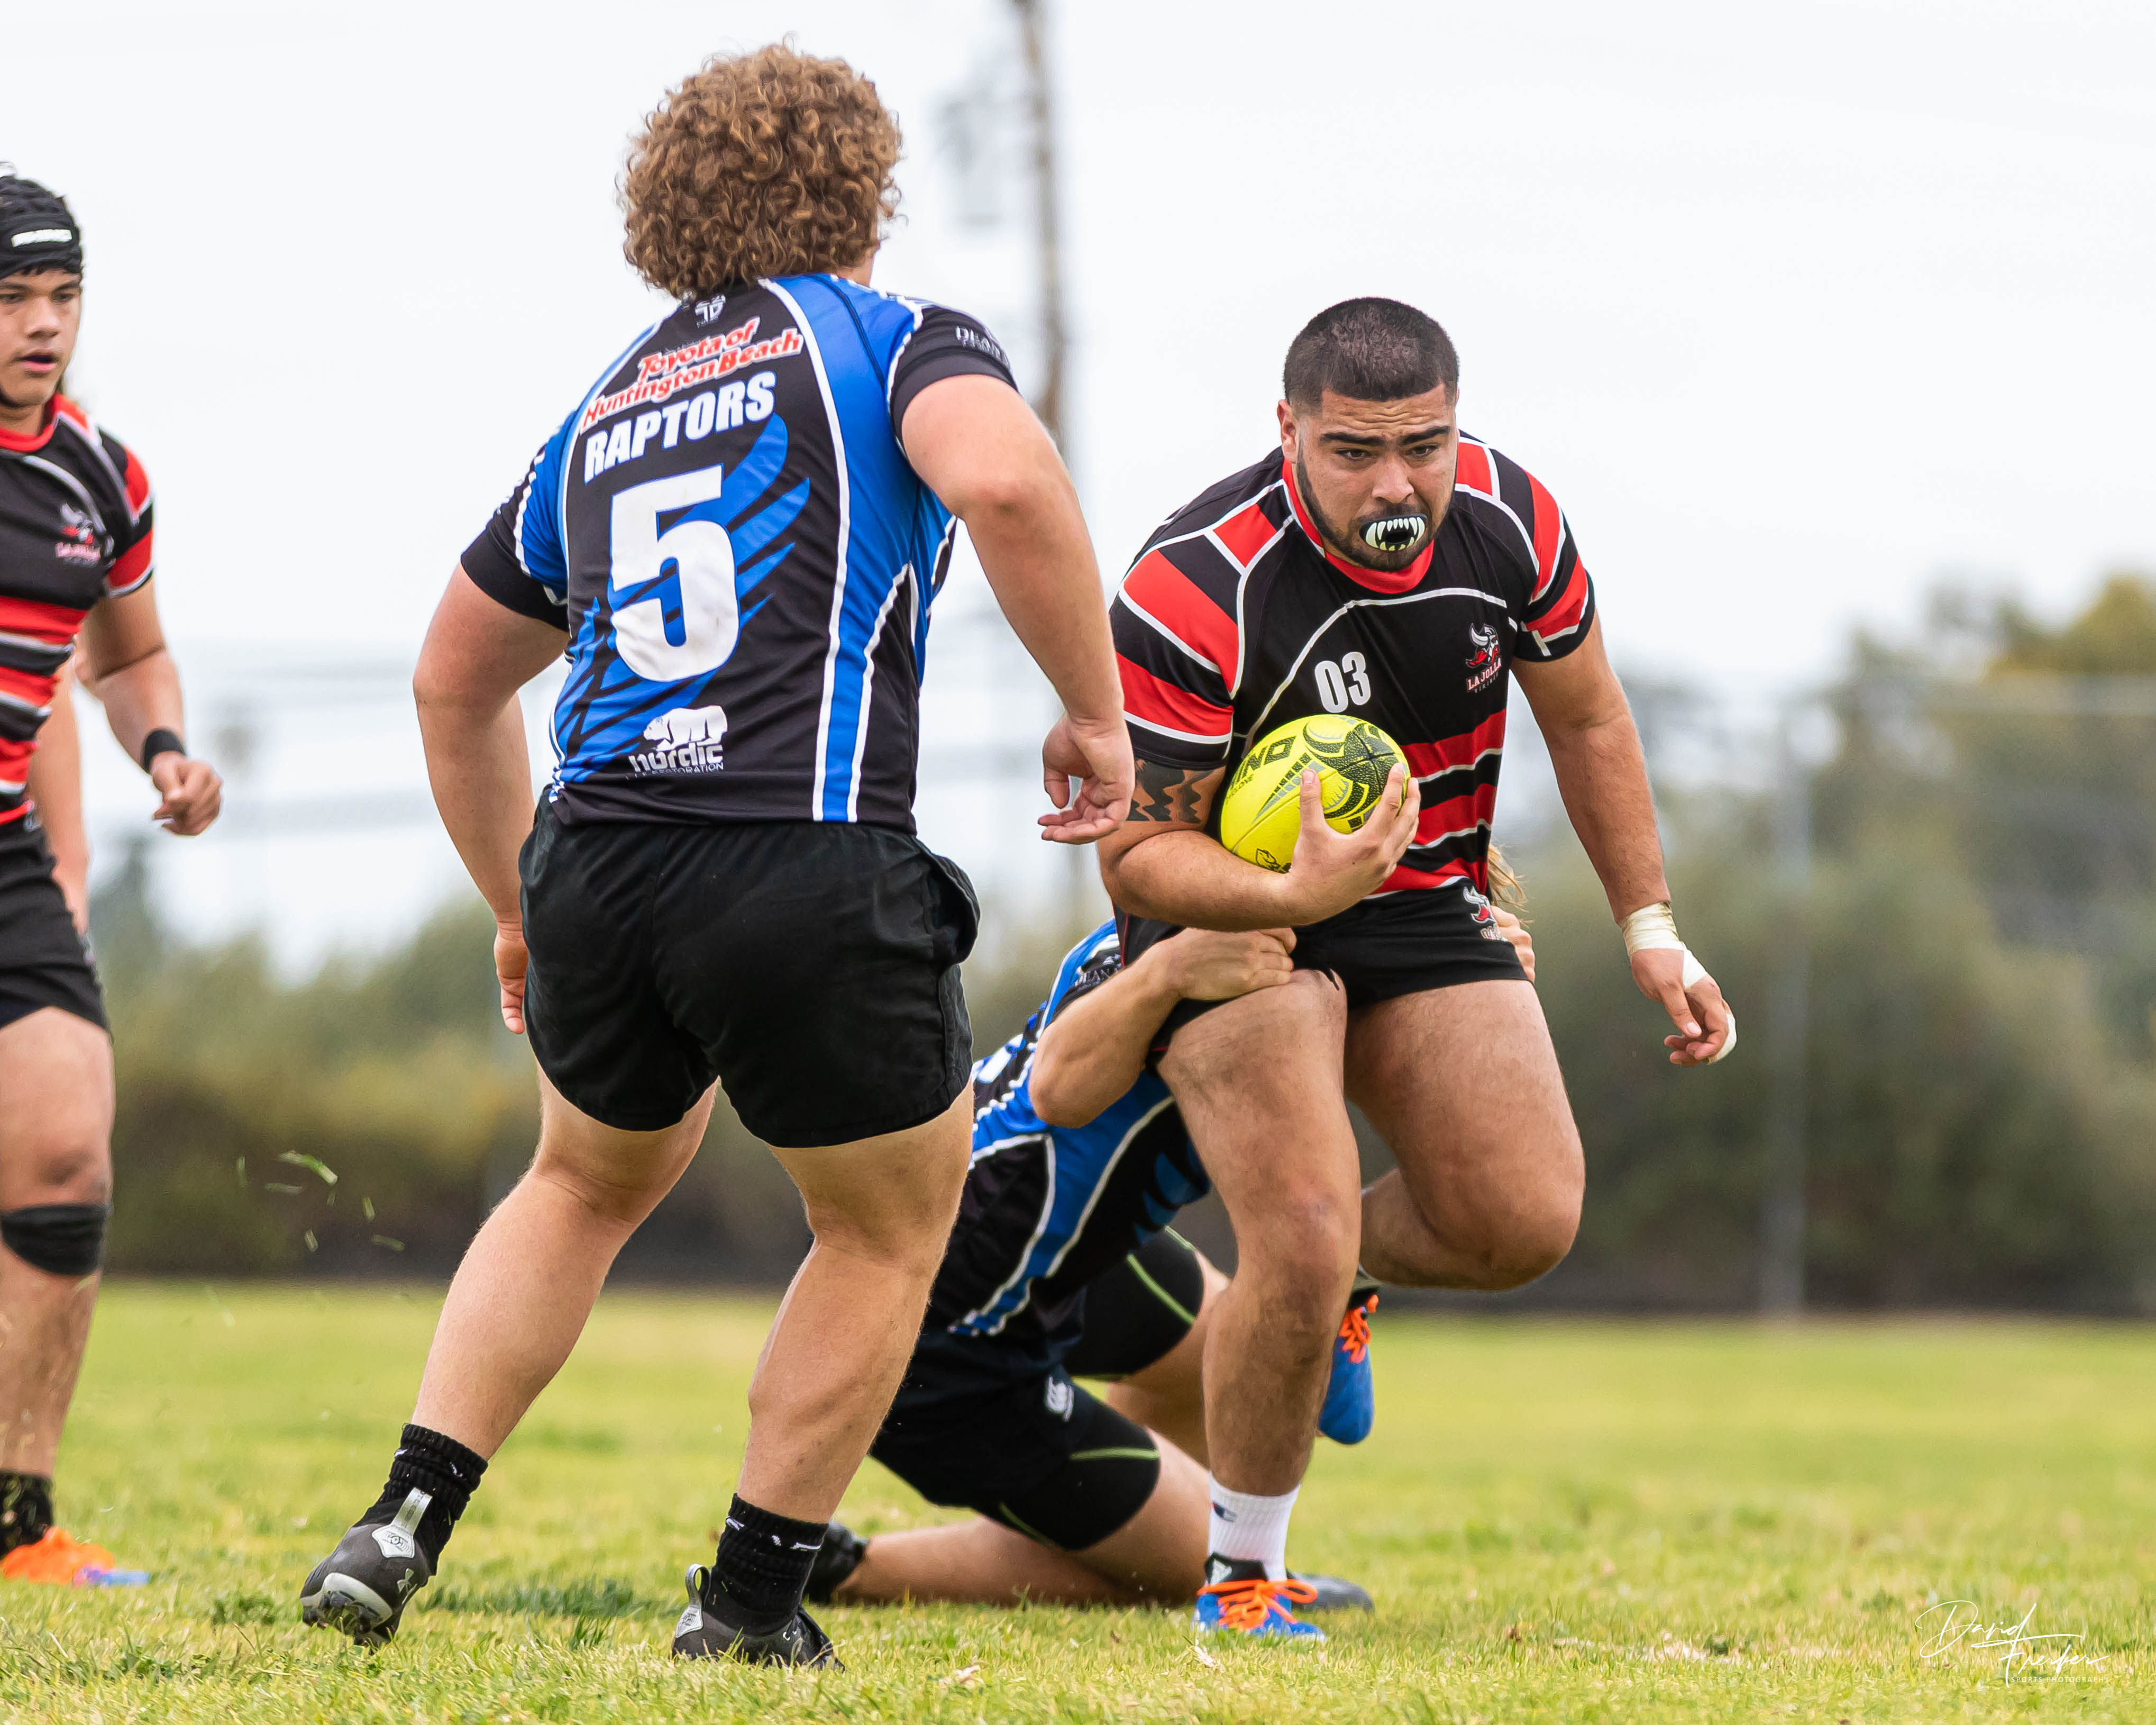 LaJollaRugby56